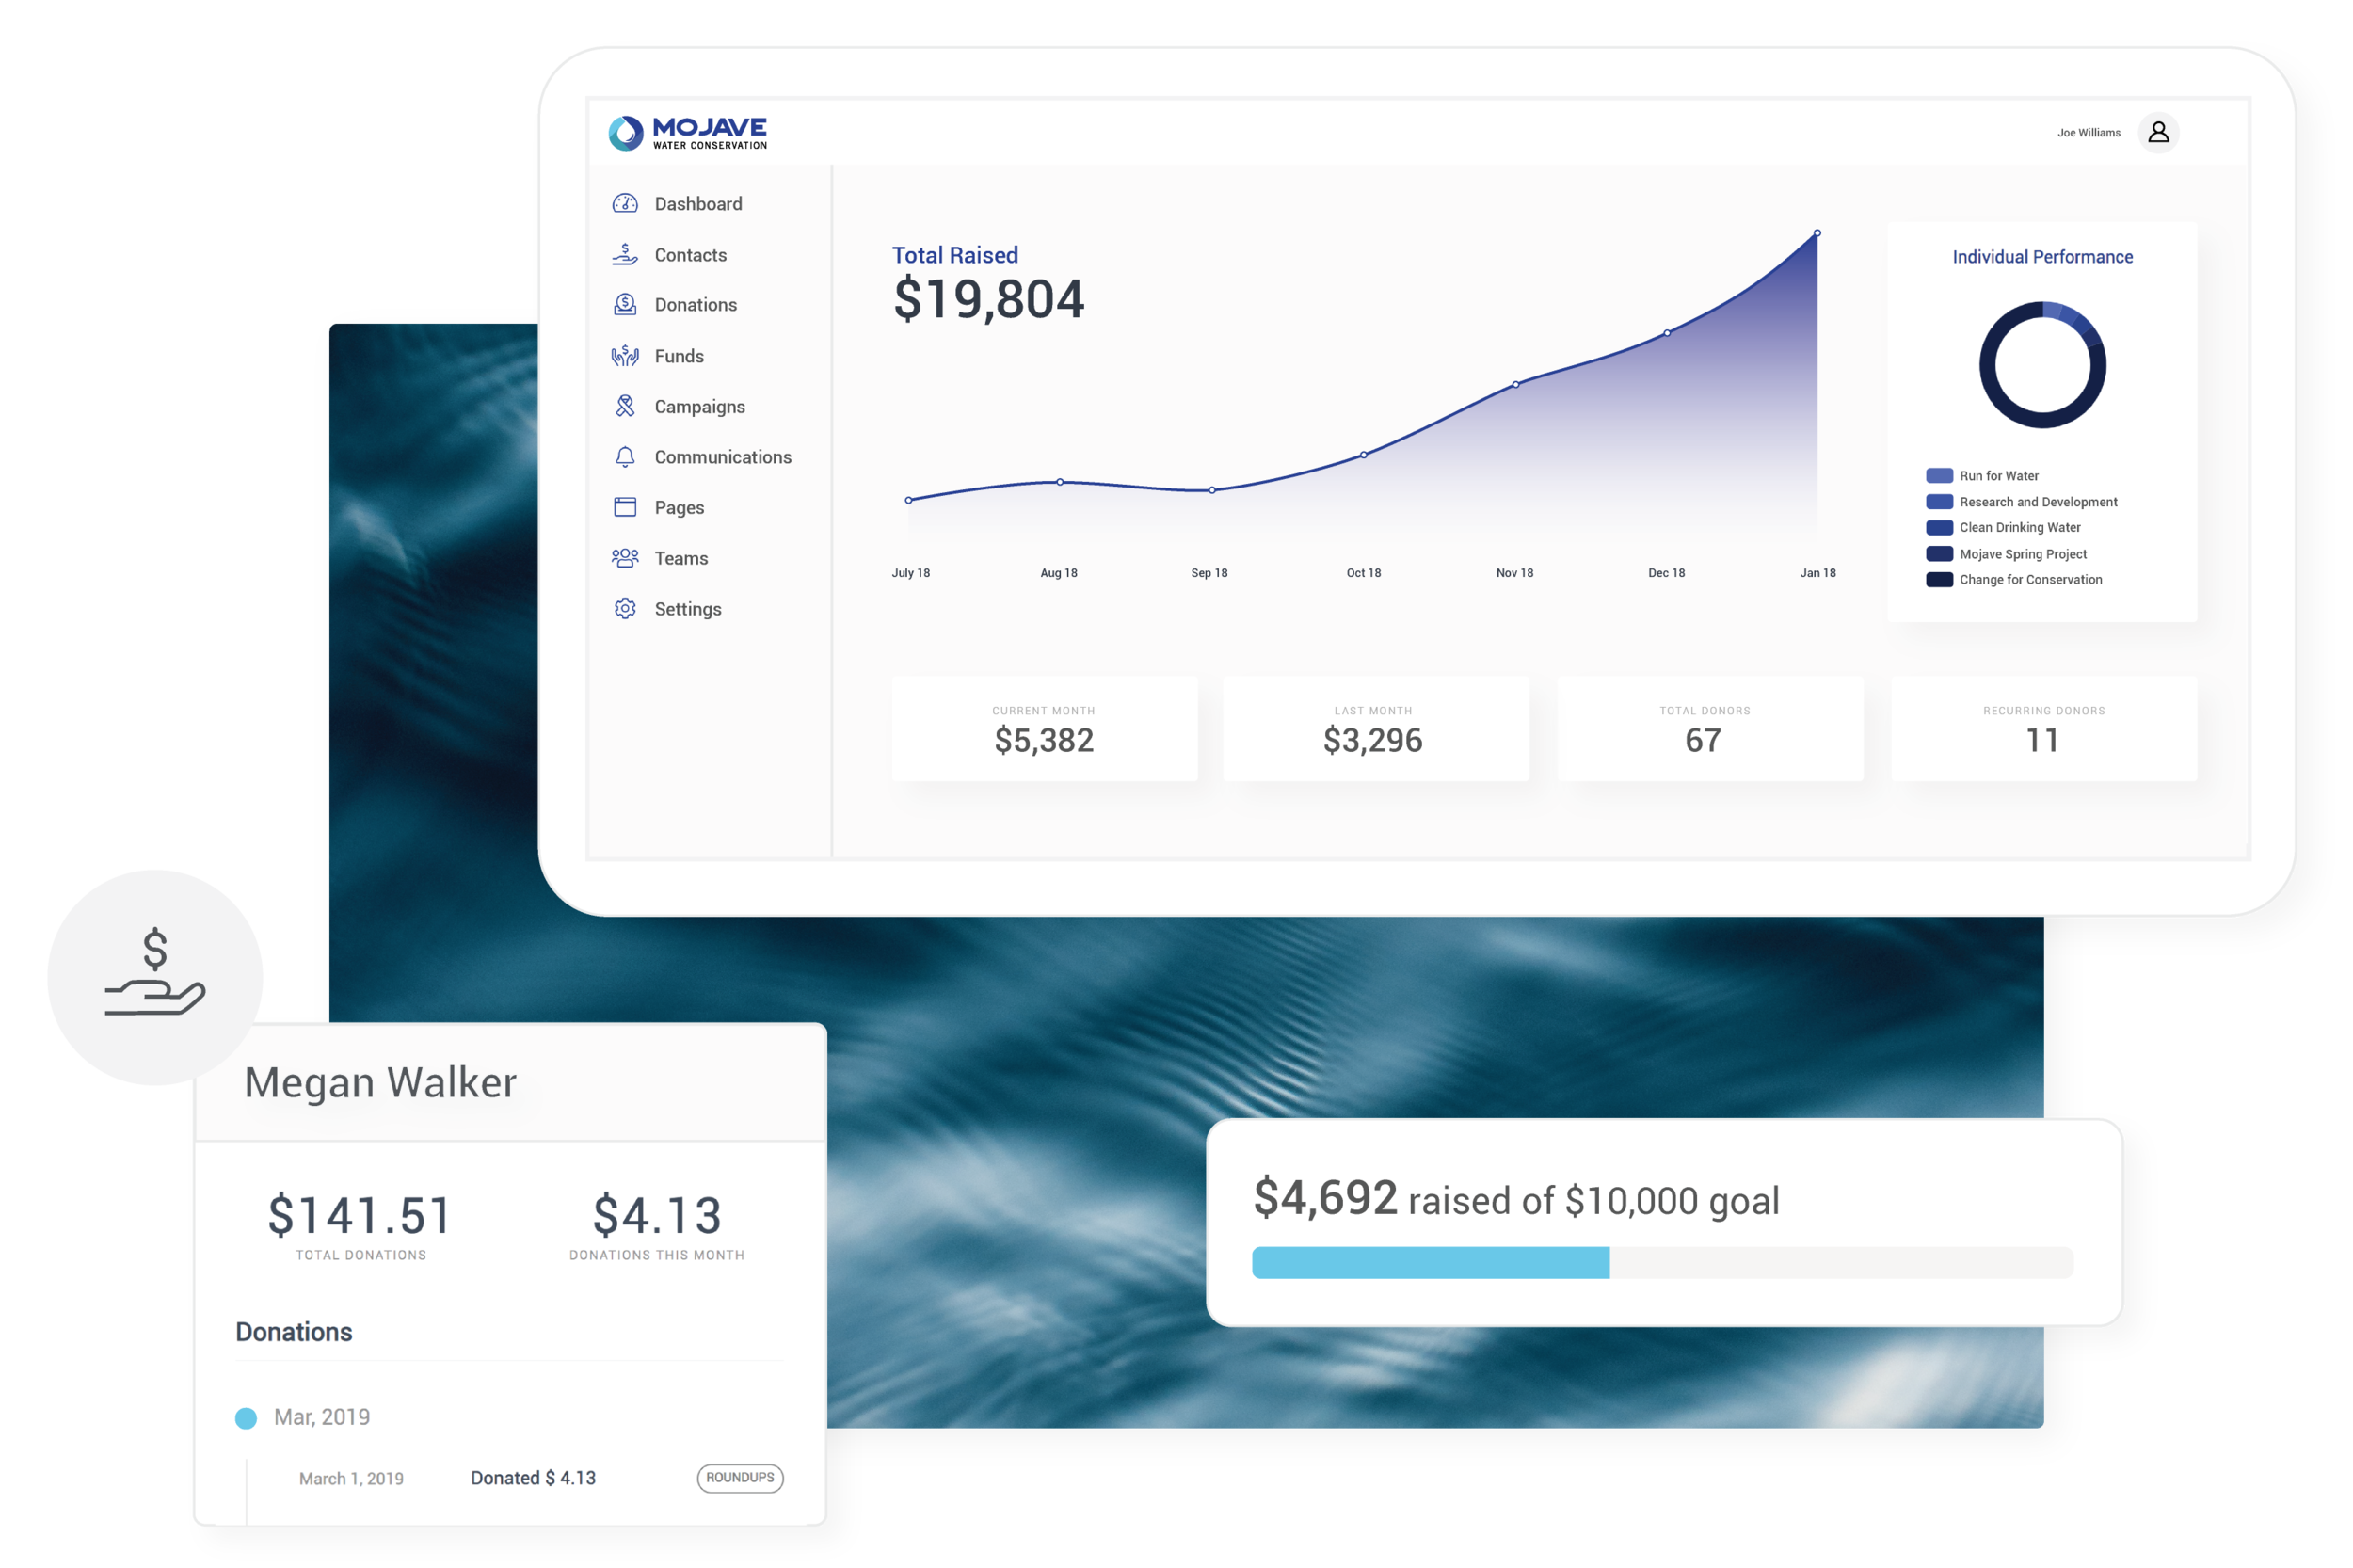 Impact CRM - All the tools you need for smarter, streamlined community management